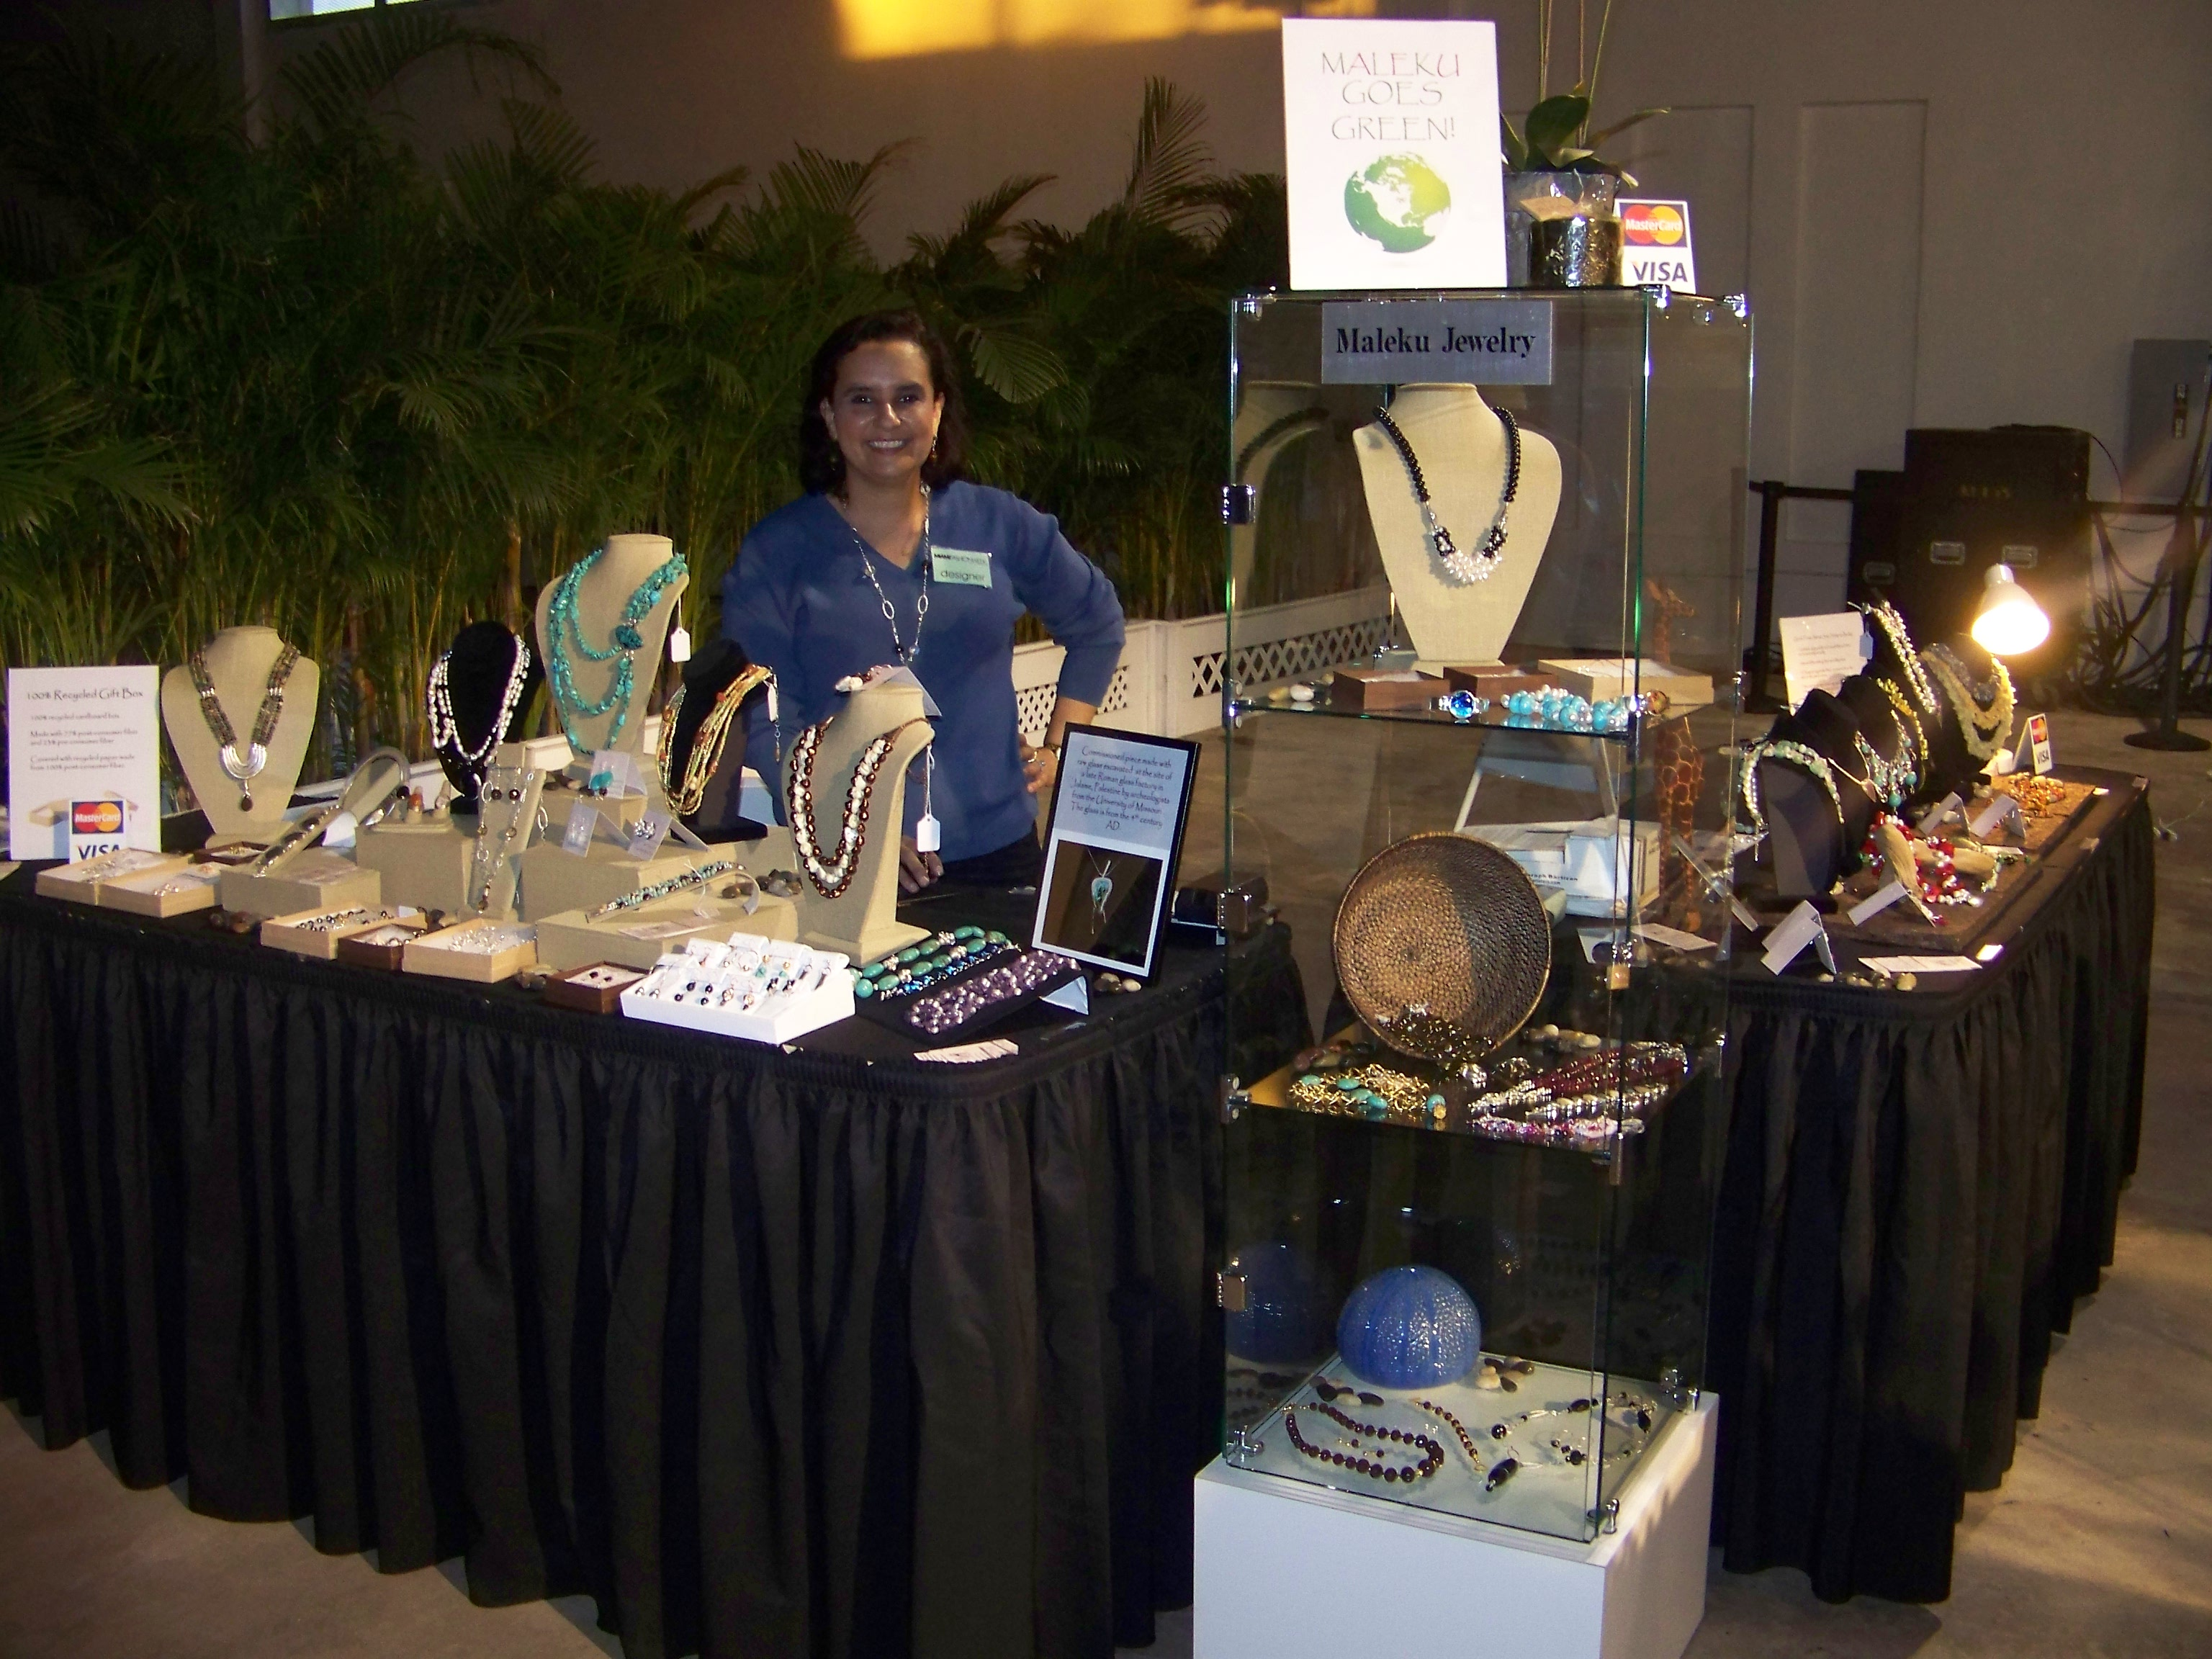 Ileana Maleku posing with her Maleku Jewelry display at Miami Fashion Week